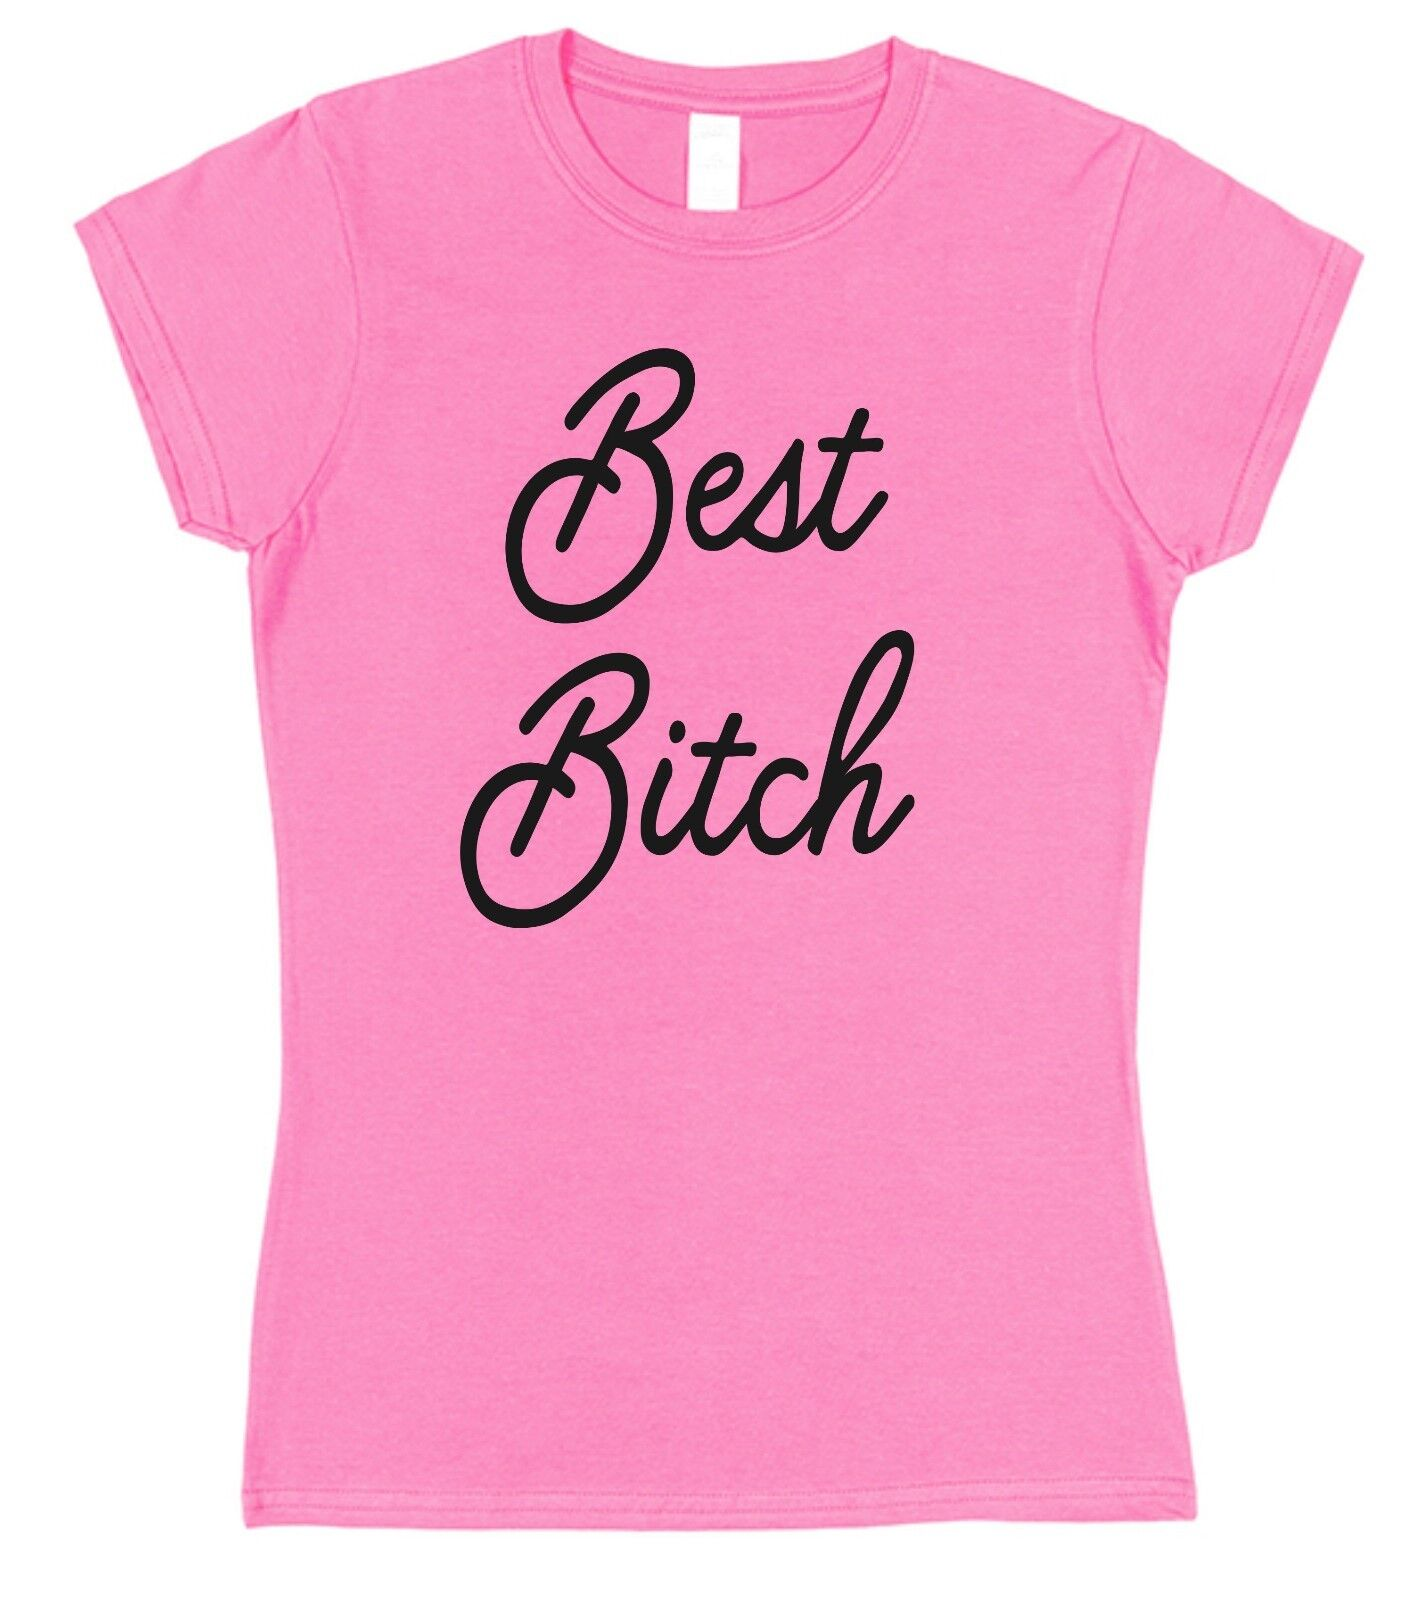 Best Bitch Funny Ladies T-shirt Christmas Gift Present Valentine's Day Friend